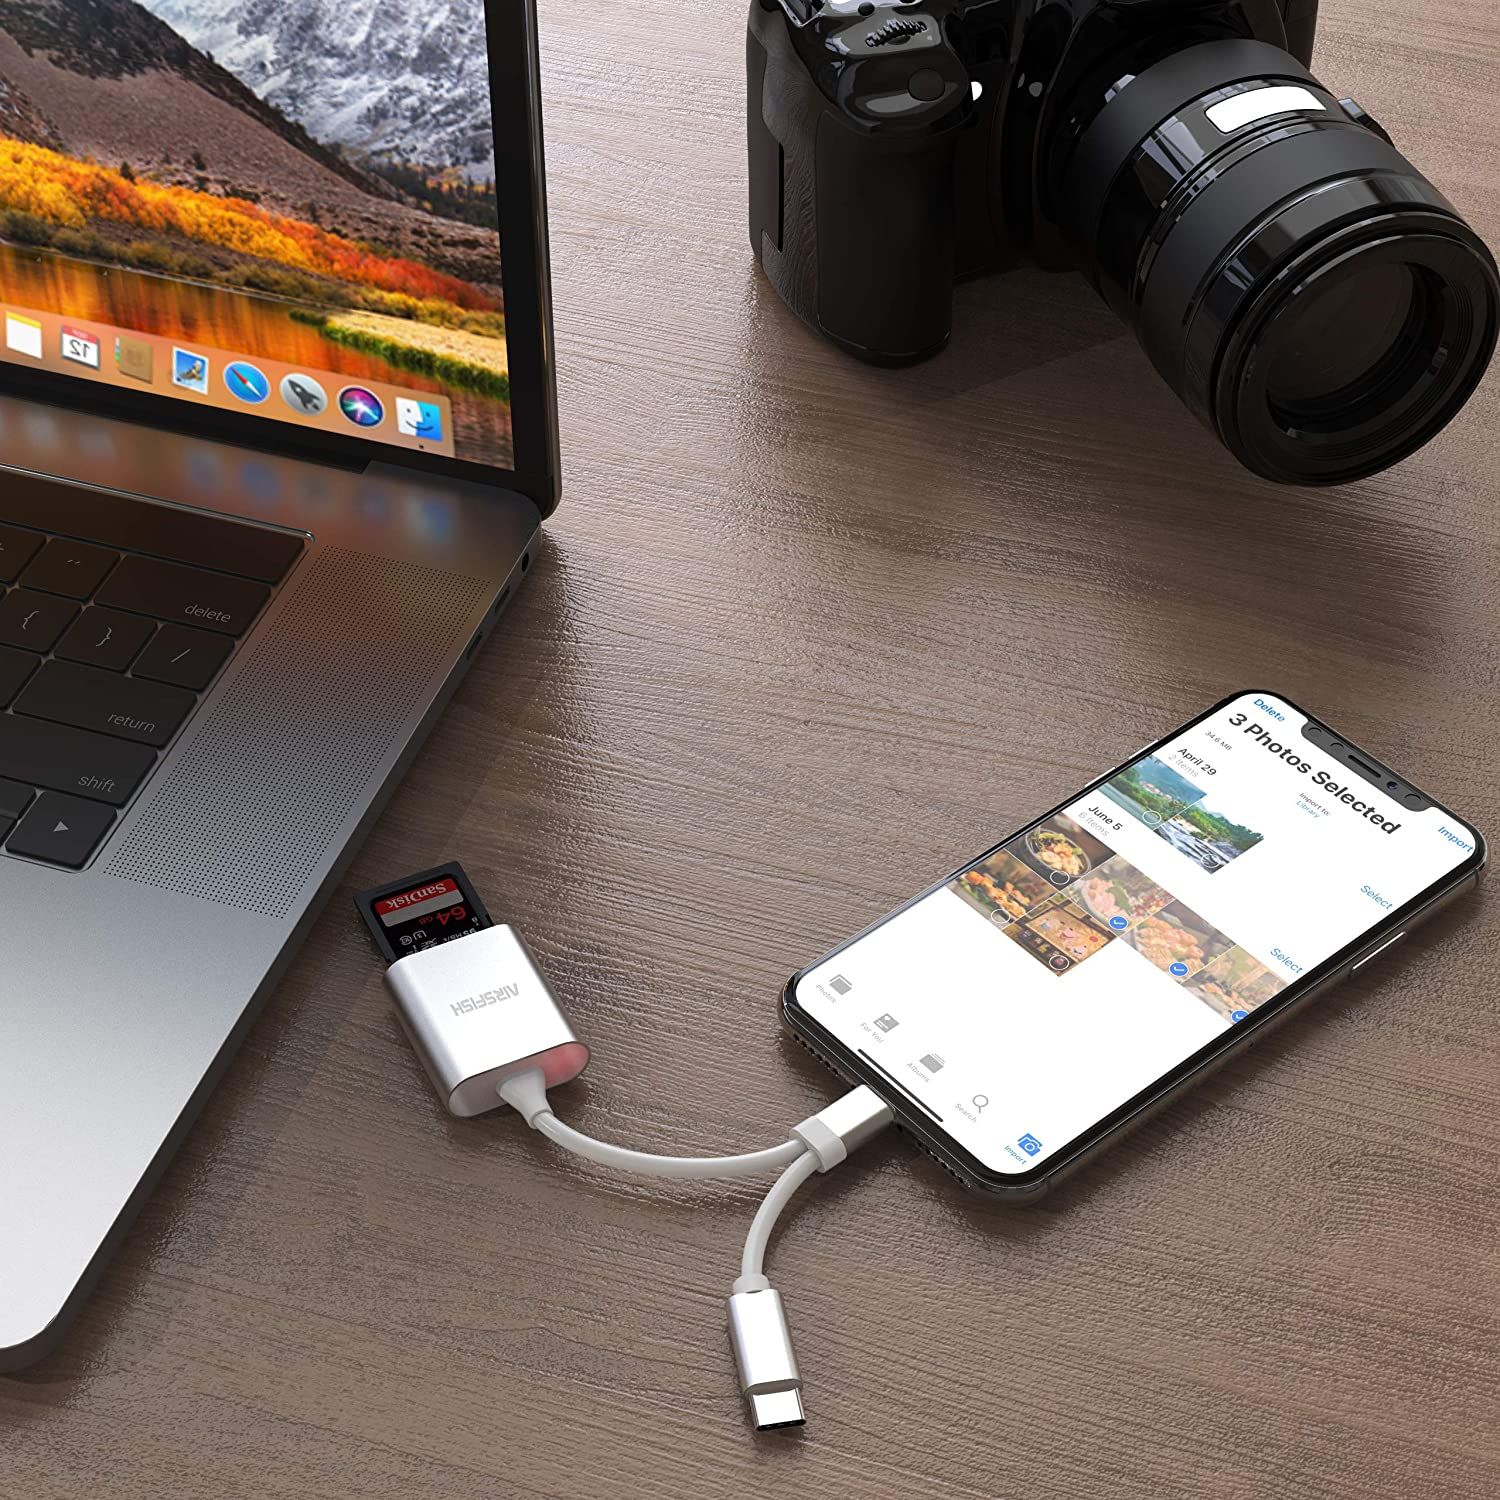 The Best External Storage Options for iPhone That Work with